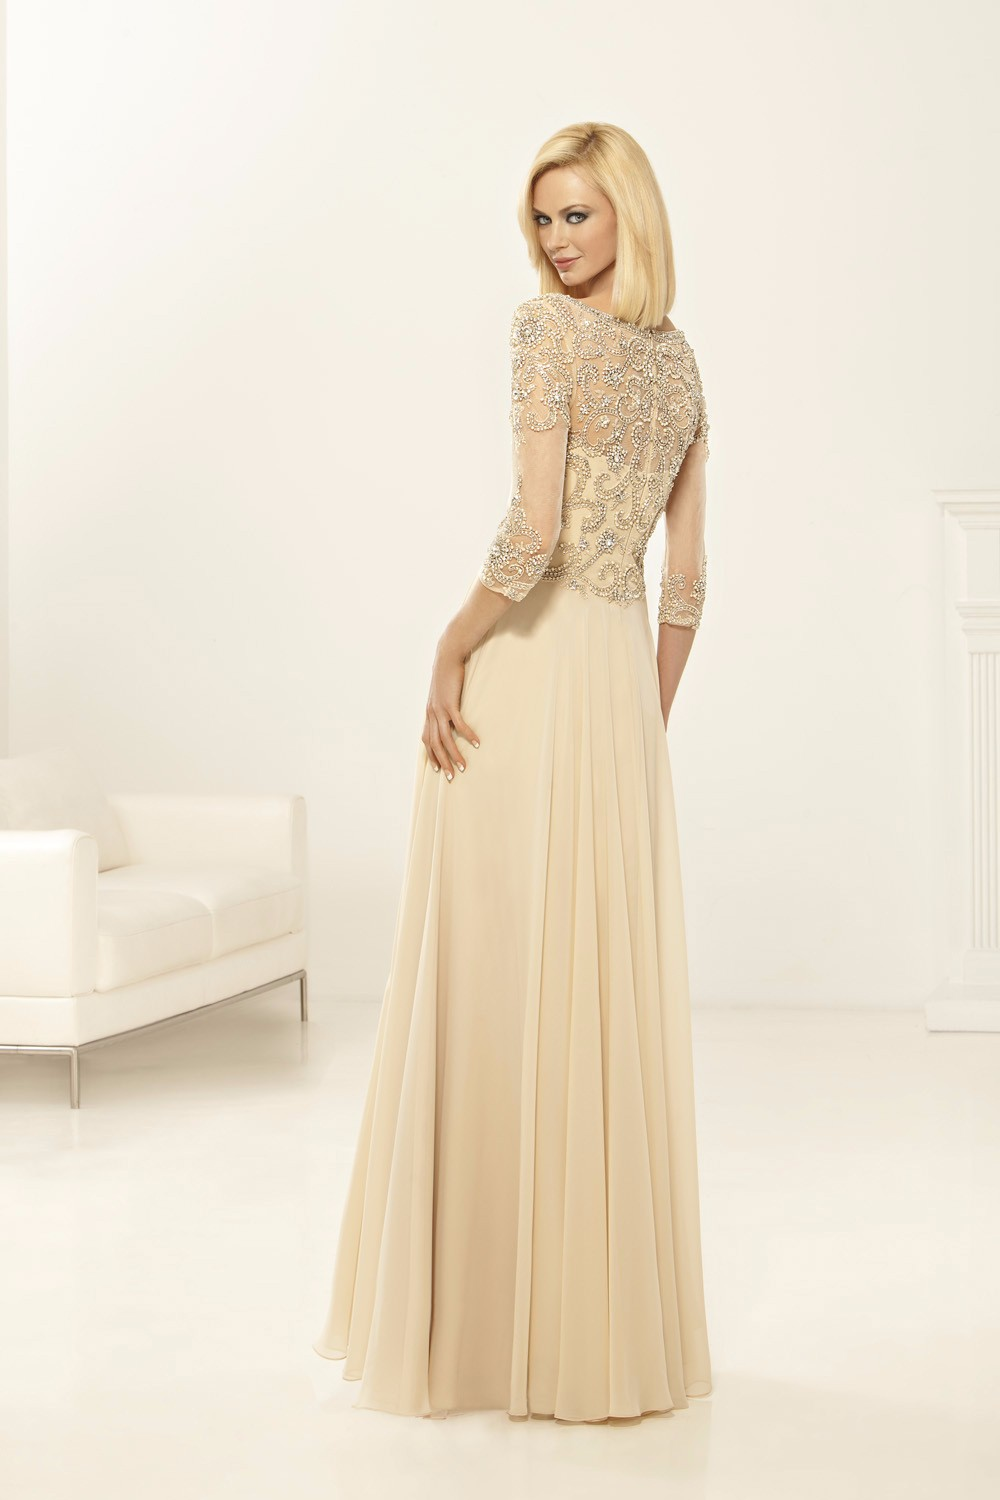 High-Quality-Hand-Beading-Bodice-Bridal-Mother-Gowns-Champagne-Mother-of-the-Bride-Dresses-Plus-Size (1)